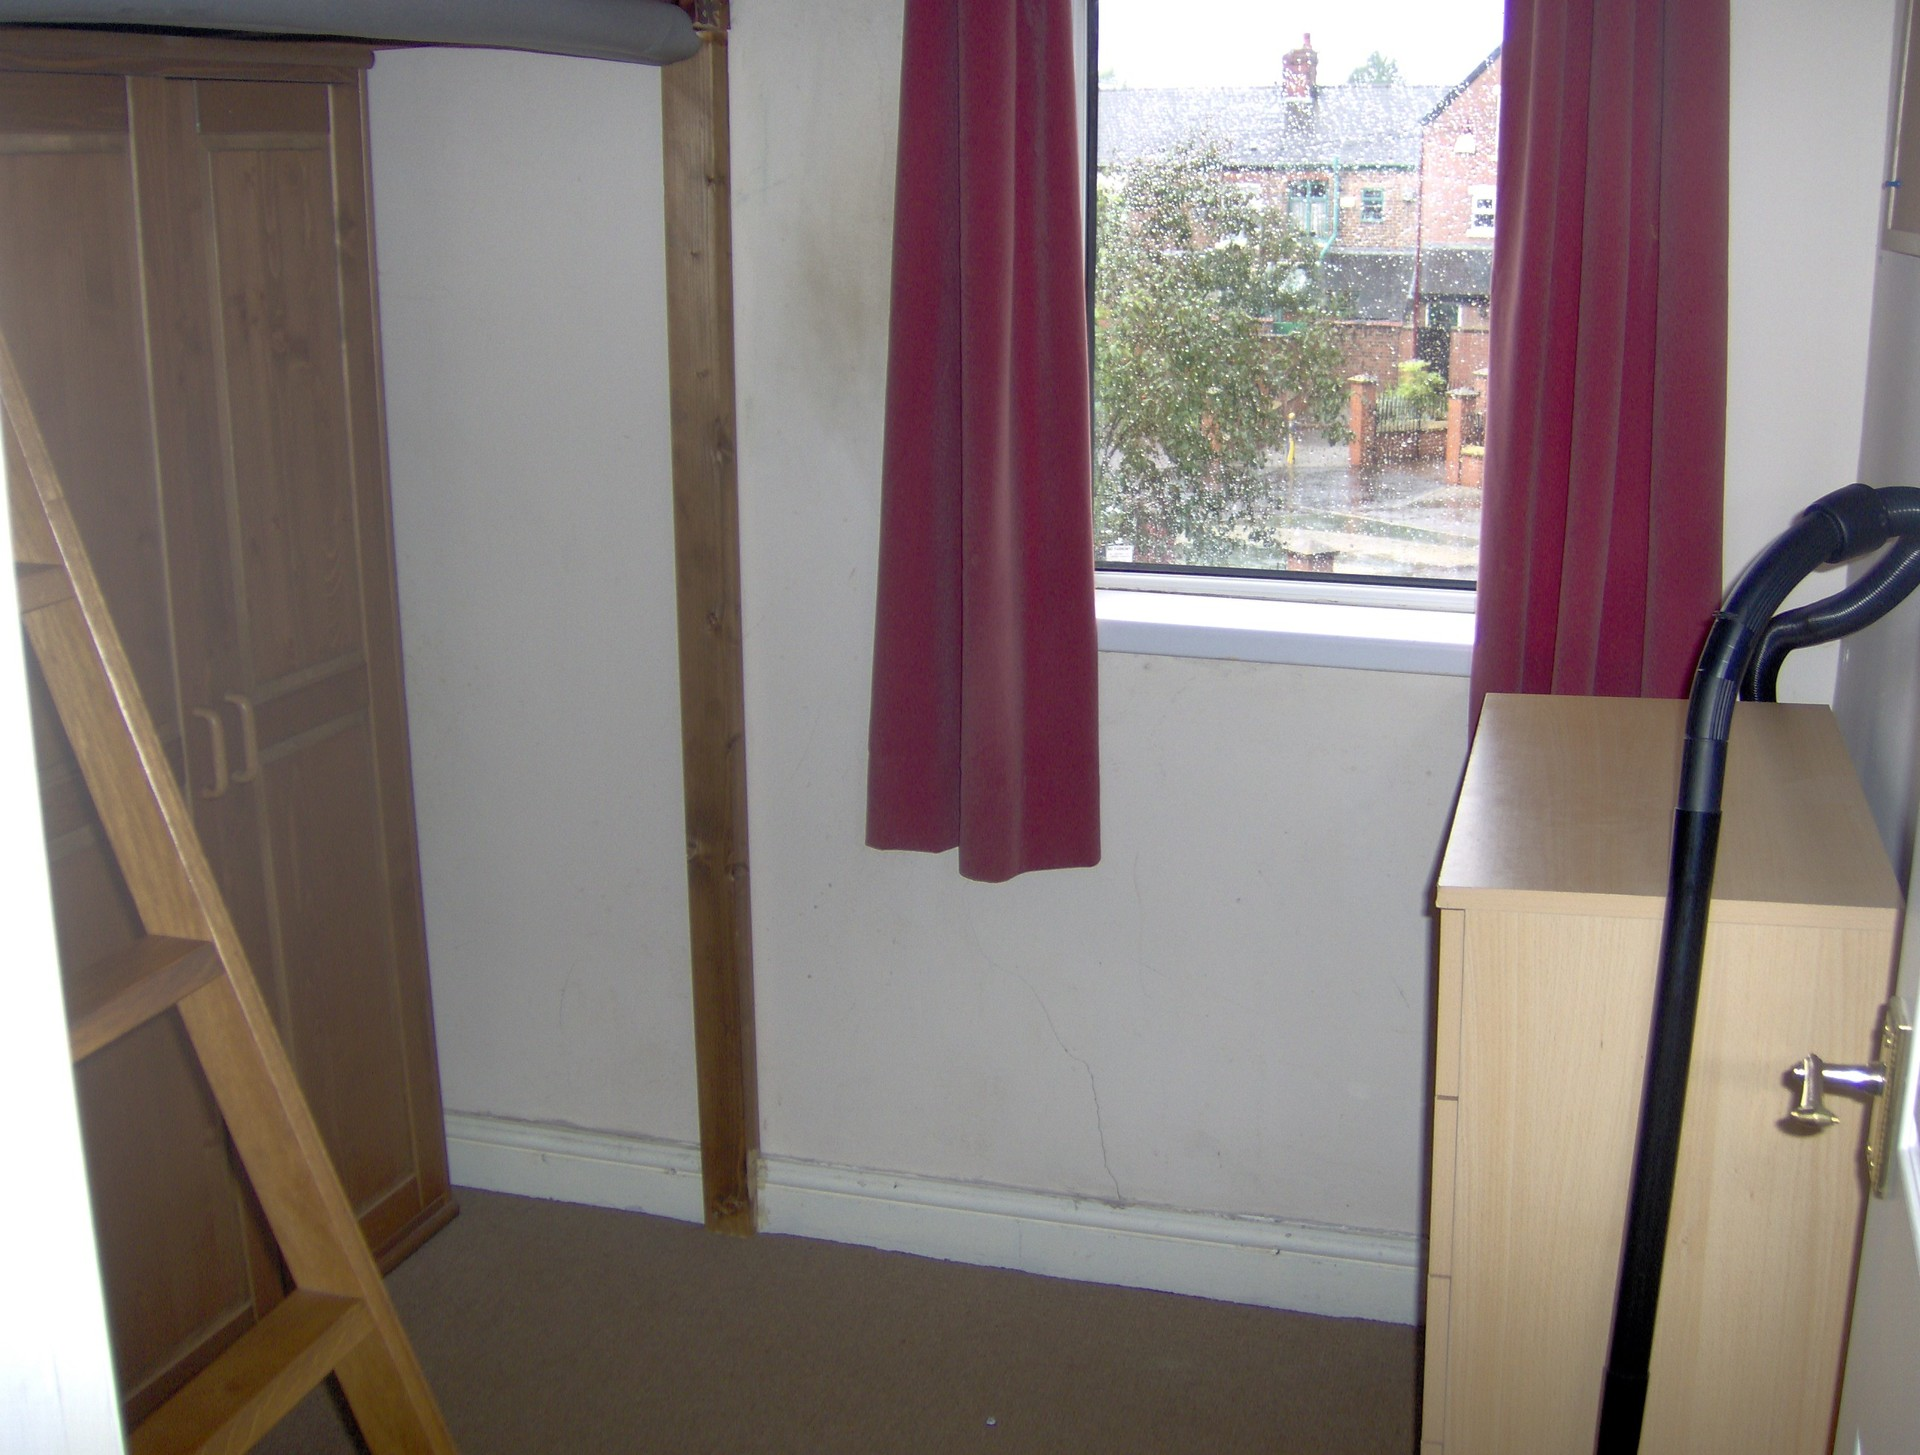 51 Purcell St, Manchester M12 4NU, UK